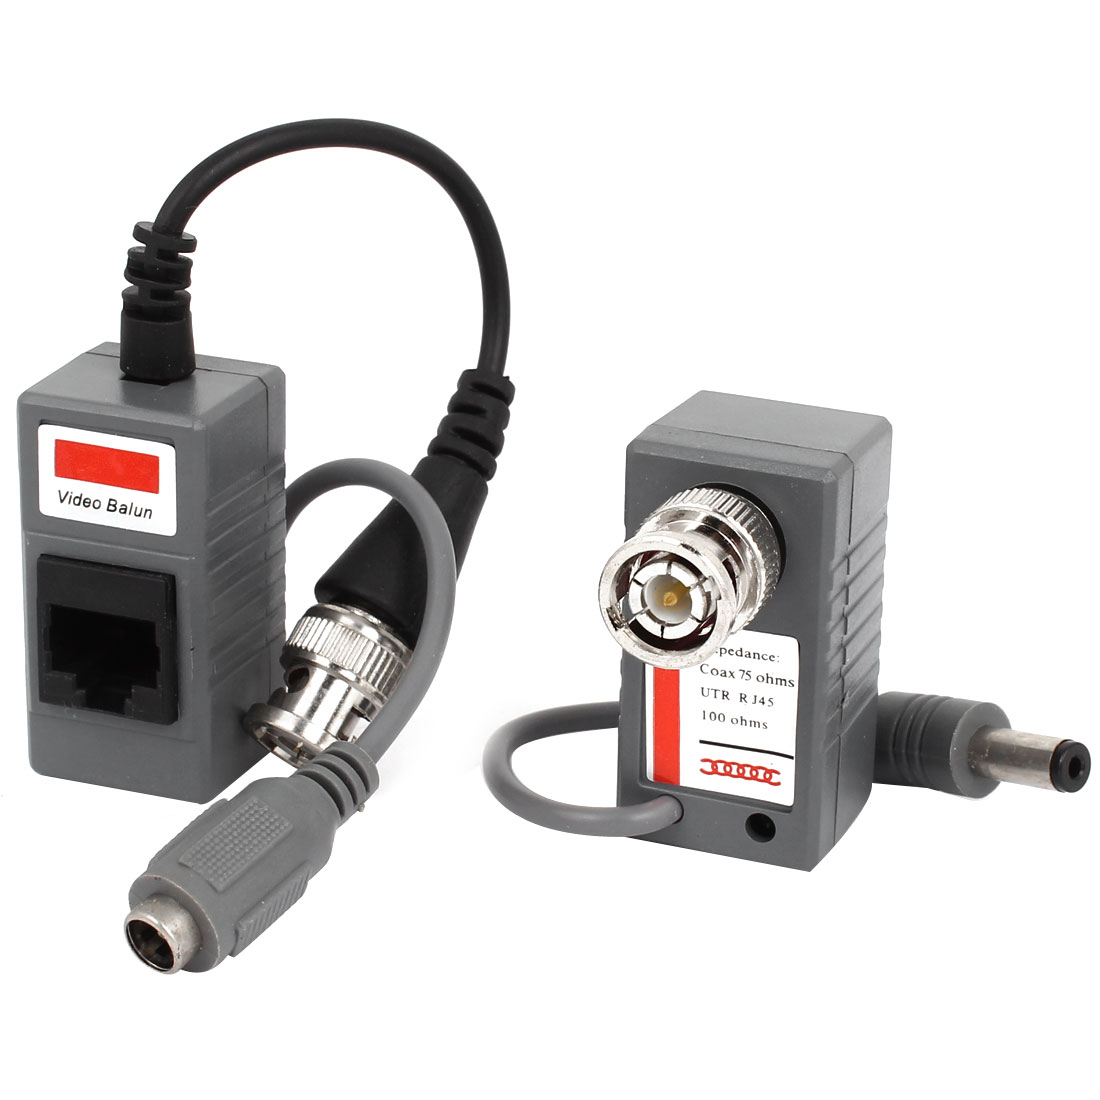 Security Camera BNC to DC 2.1x5.5mm Video Power Balun Transceiver Pair